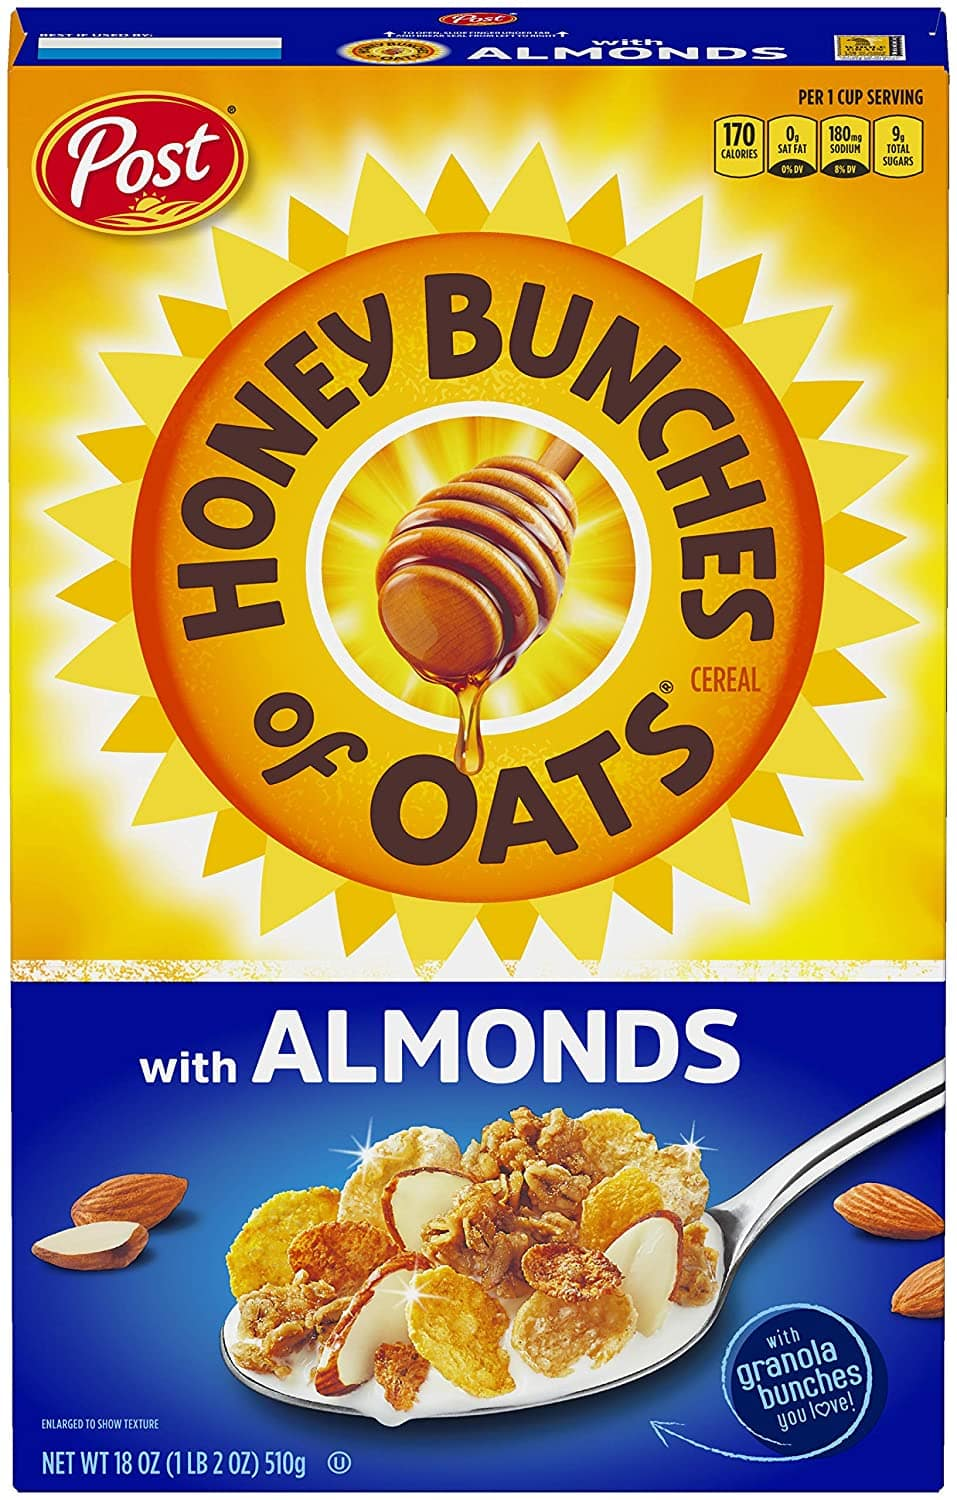 18oz. Post Honey Bunches of Oats w/ Crunchy Roasted Cereal S&S $2.6